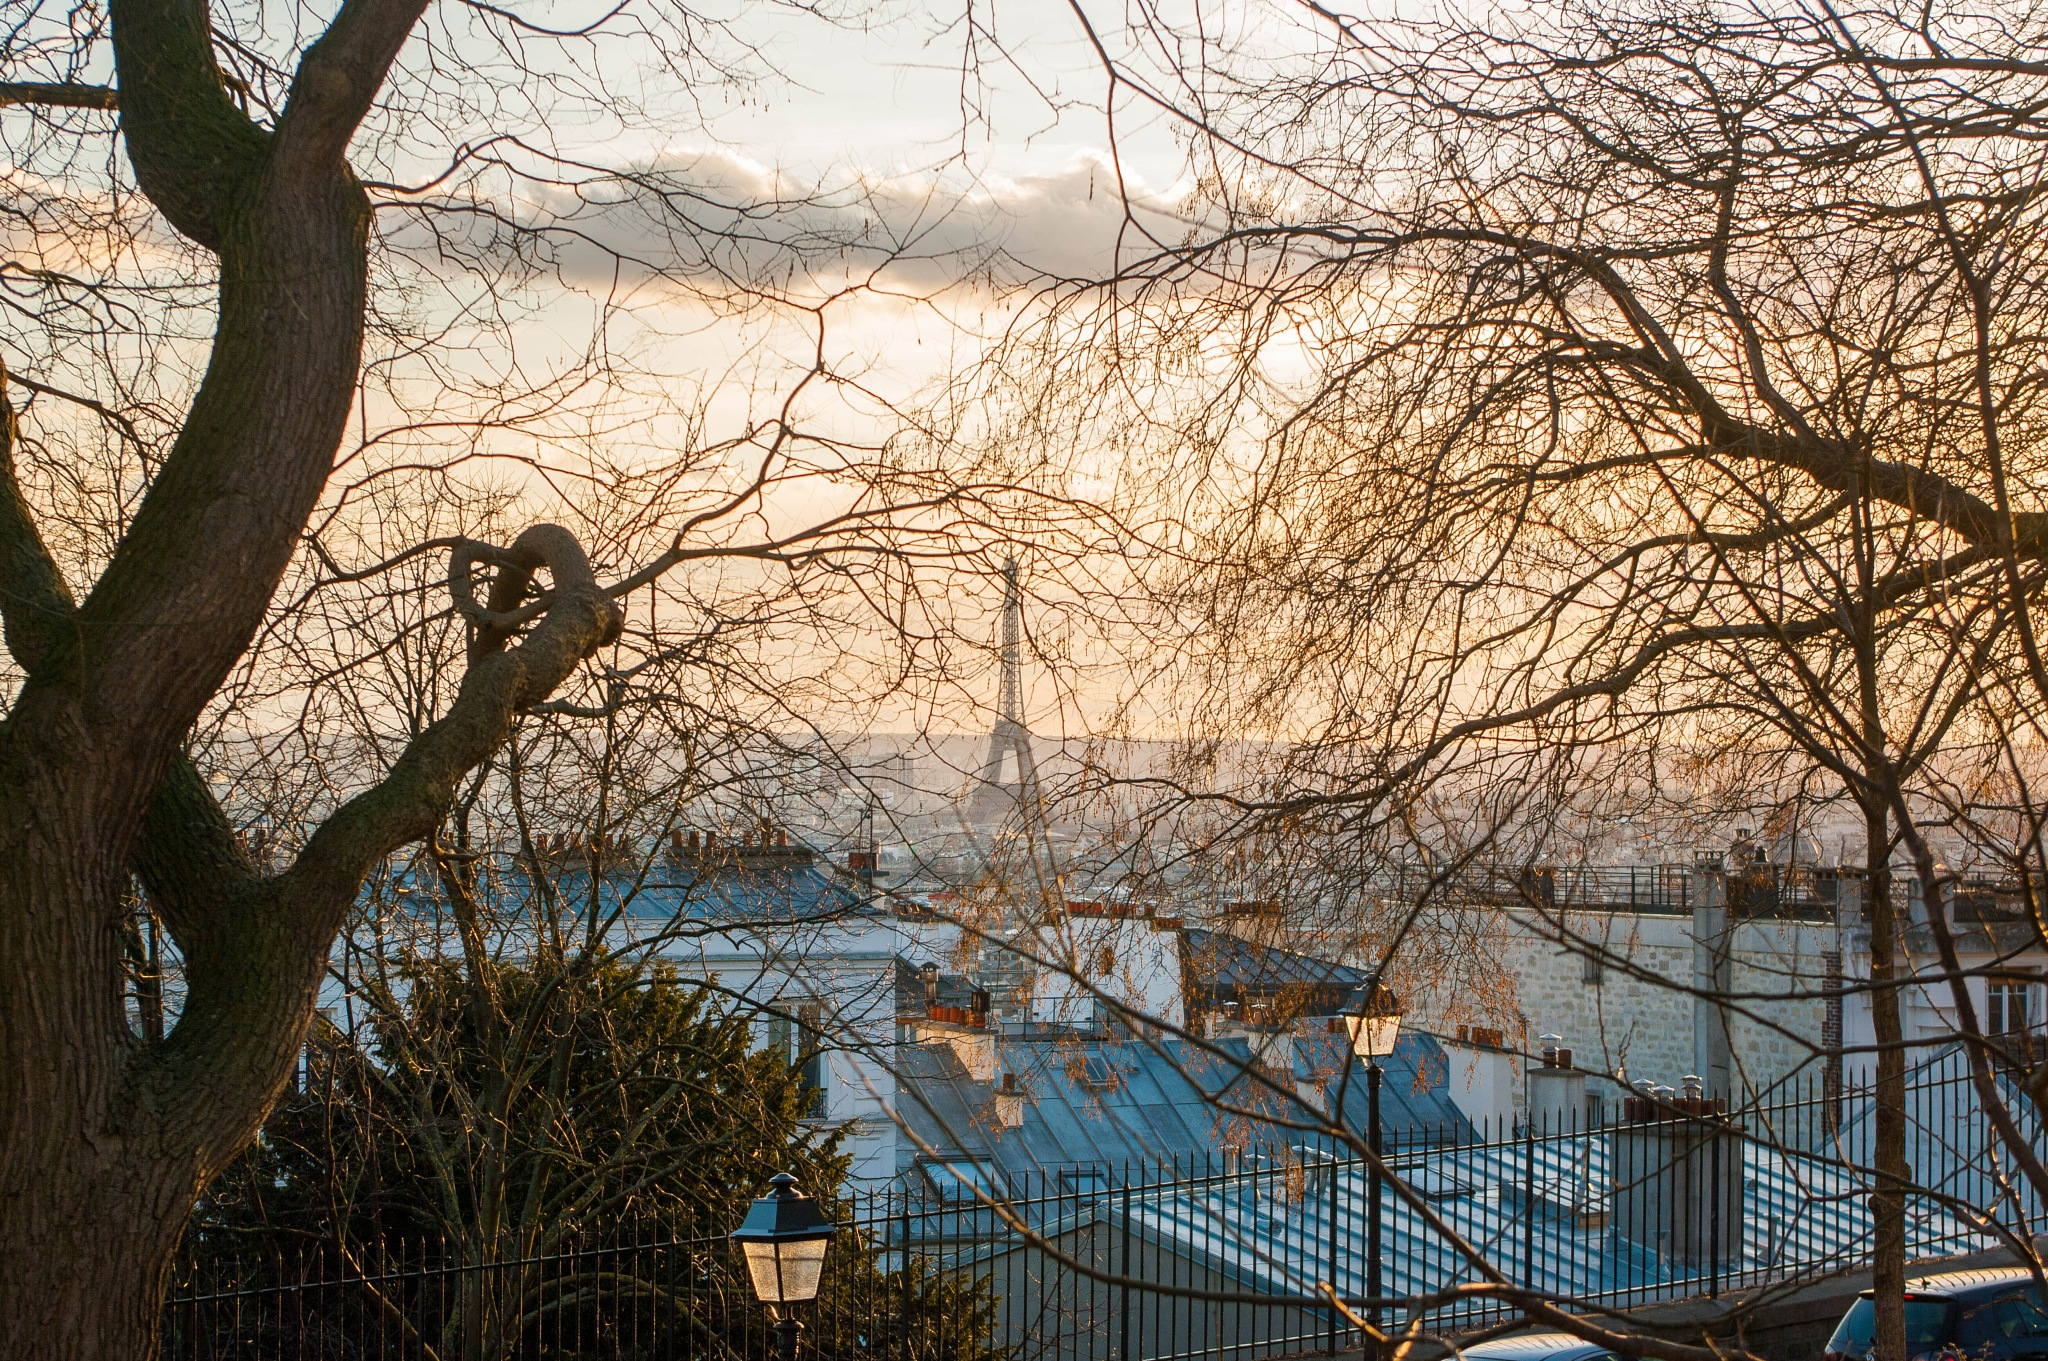 A view from the Montmartre by Teodor Bordeianu